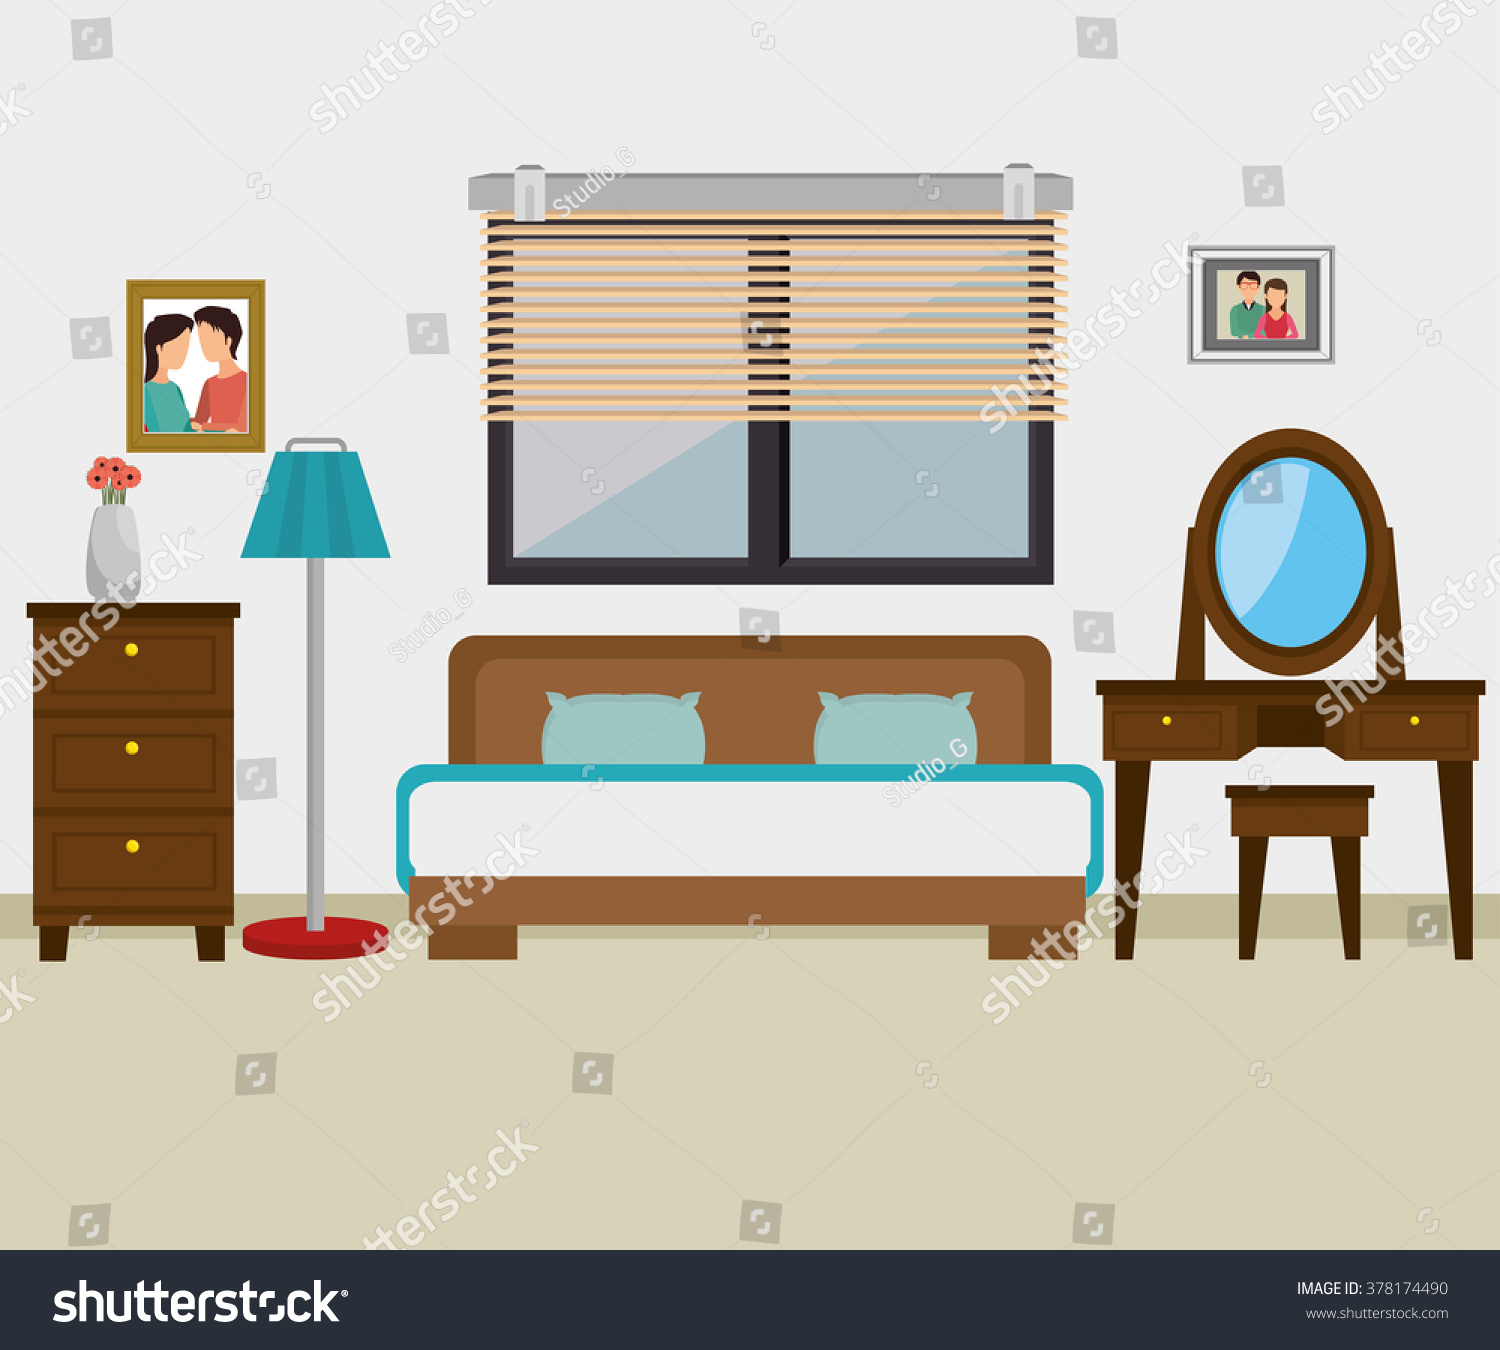 Hotel products services design stock vector 378174490 for Product and service design